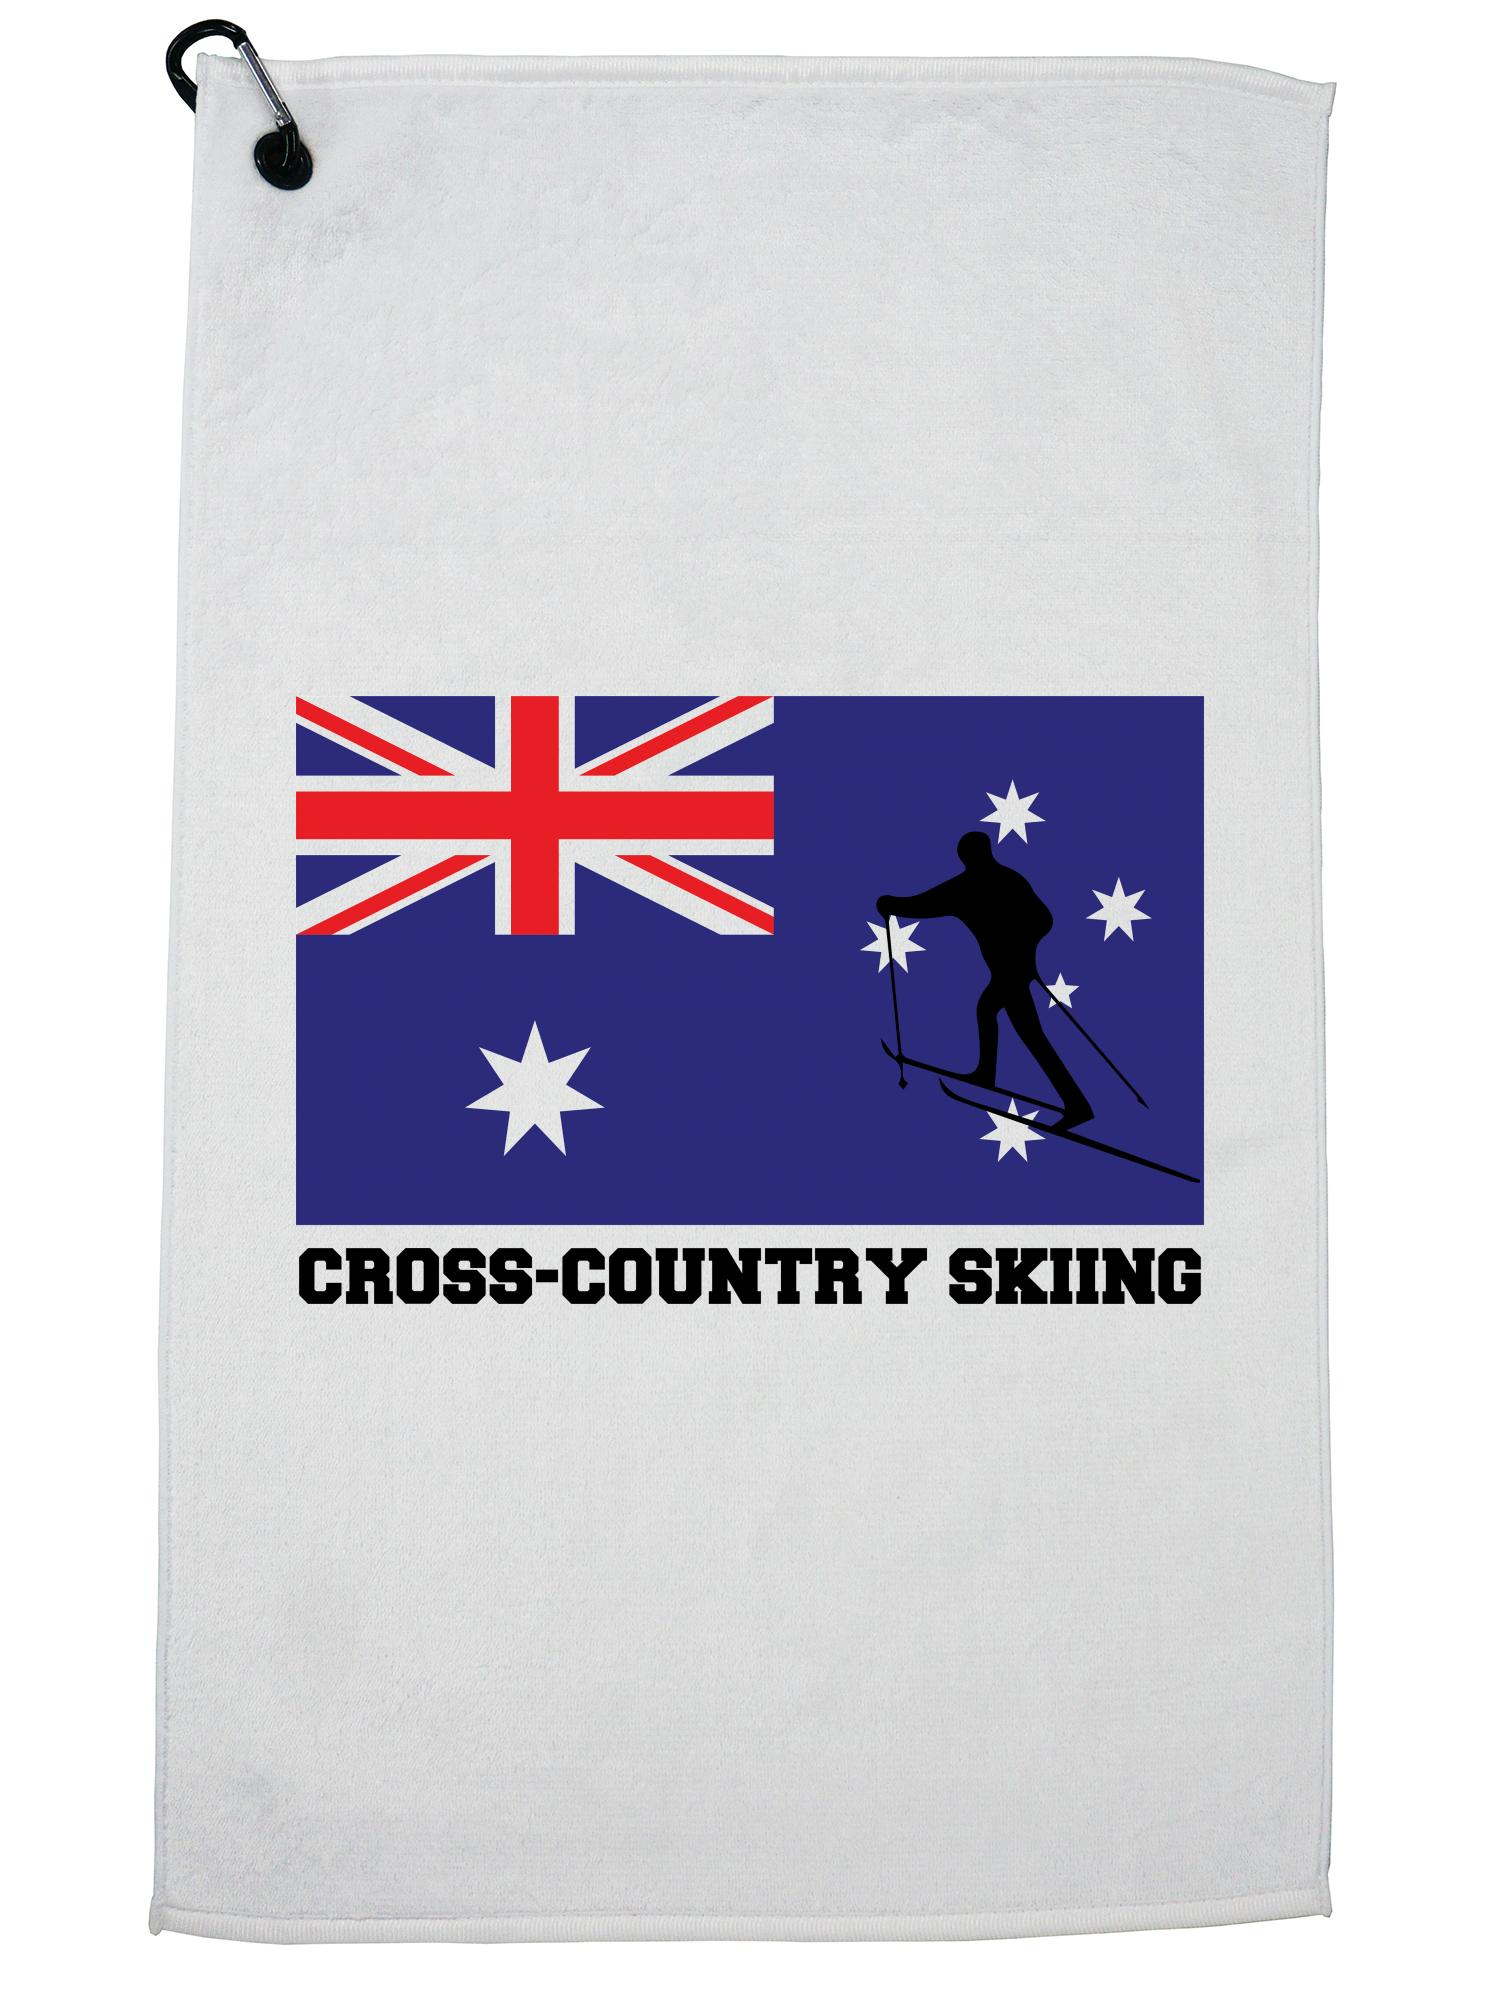 Australia Olympic Cross Country Skiing AUS Flag Silhouette Golf Towel with Carabiner Clip by Hollywood Thread